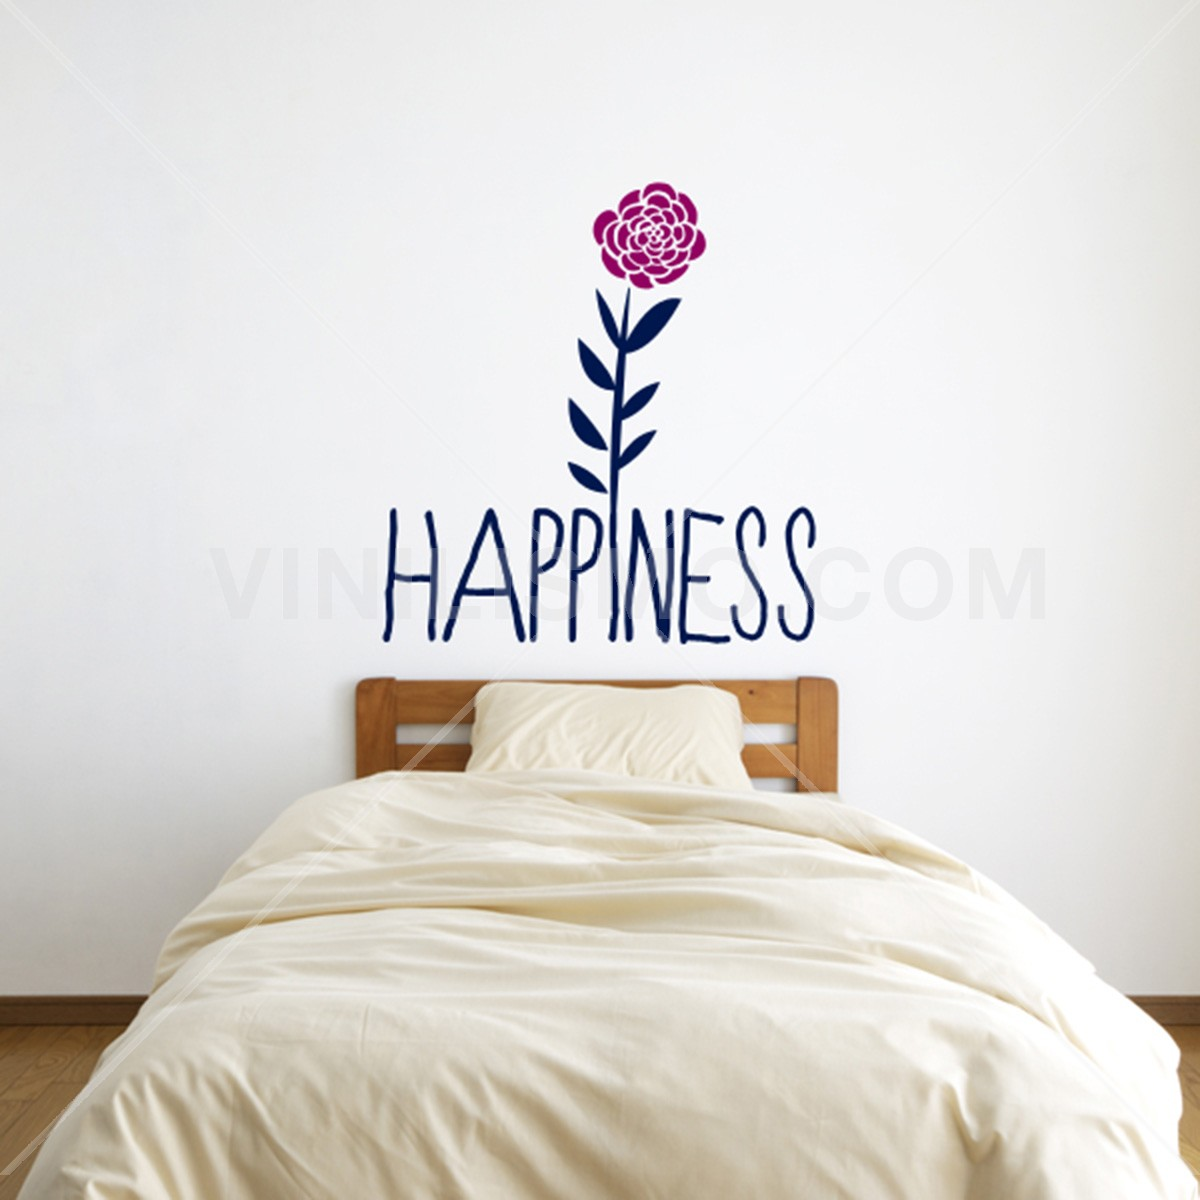 Vinilo Decorativo: Happiness